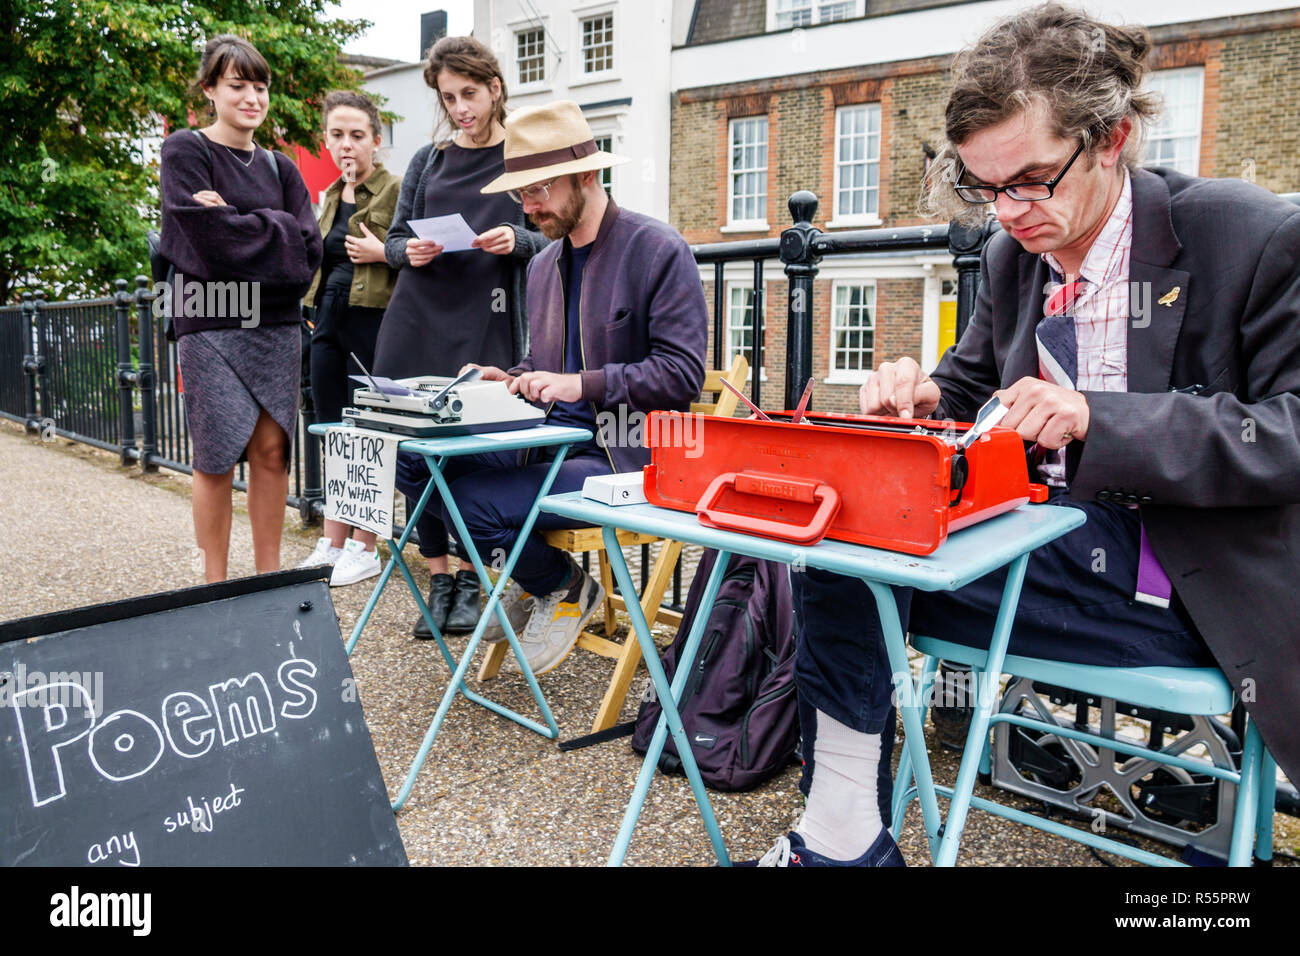 United Kingdom Great Britain England London Southwark Bankside street poets verse to go literary street artists spontaneous poets unusual occupation p - Stock Image